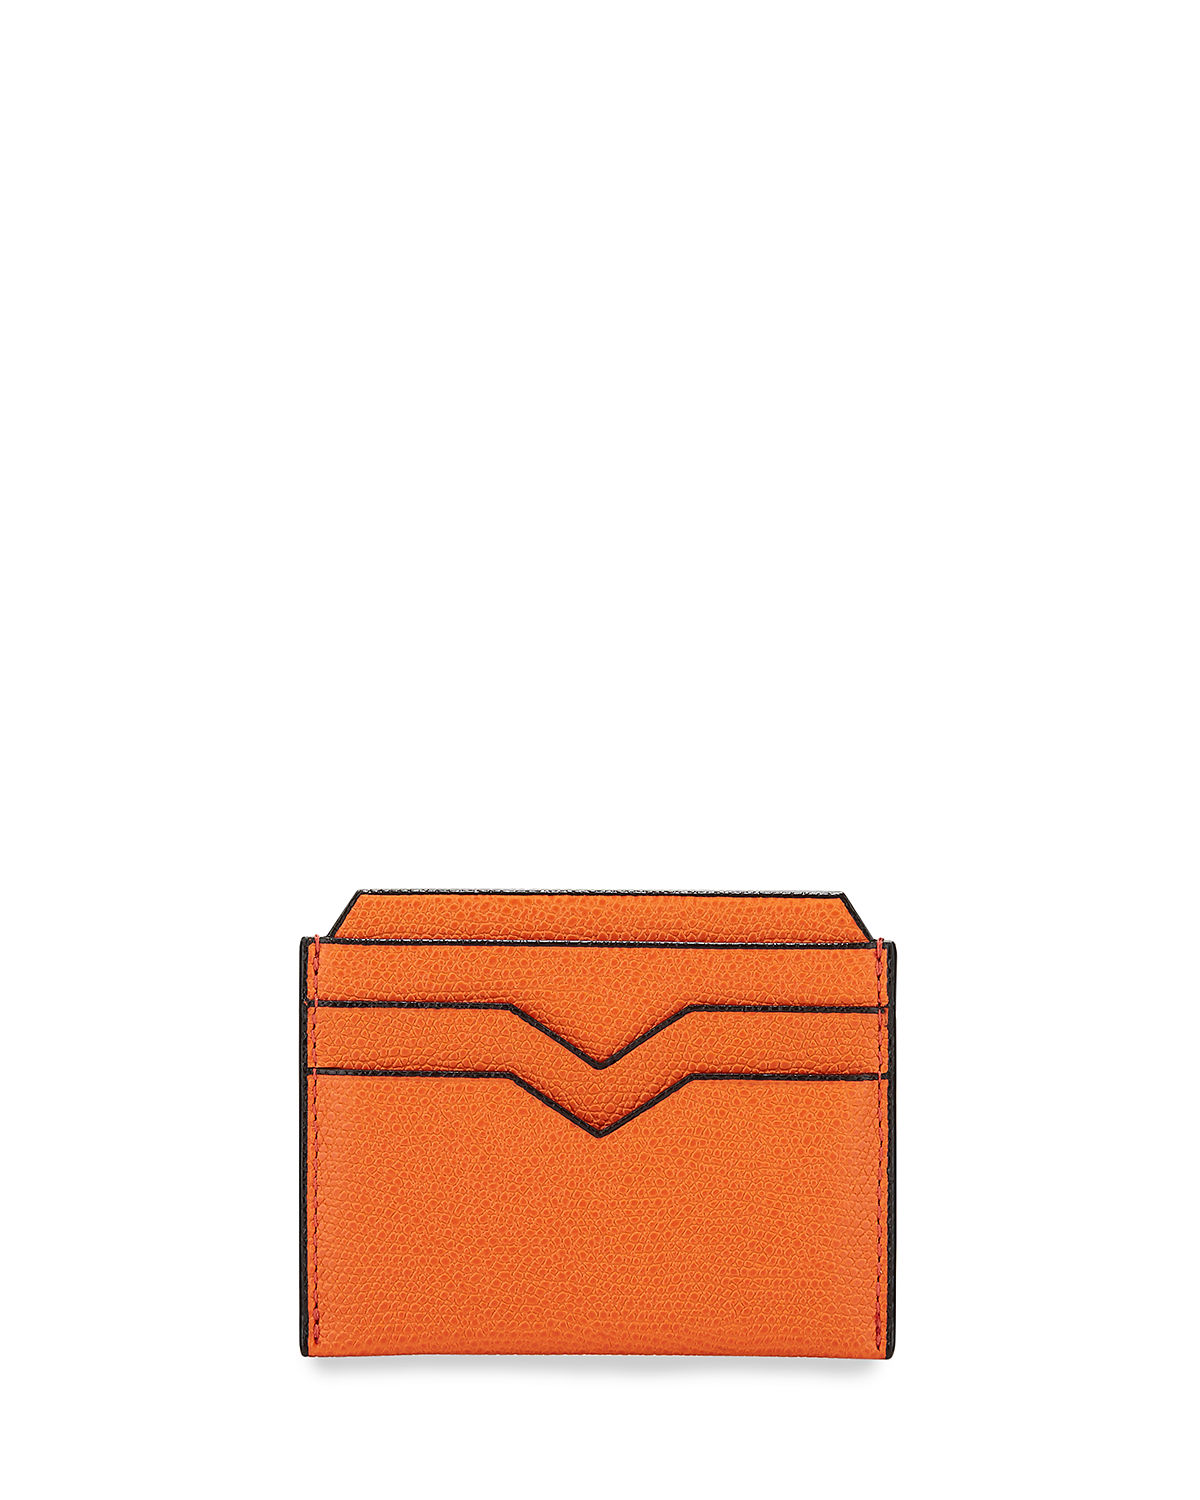 Valextra Bags SAFFIANO LEATHER CARD CASE